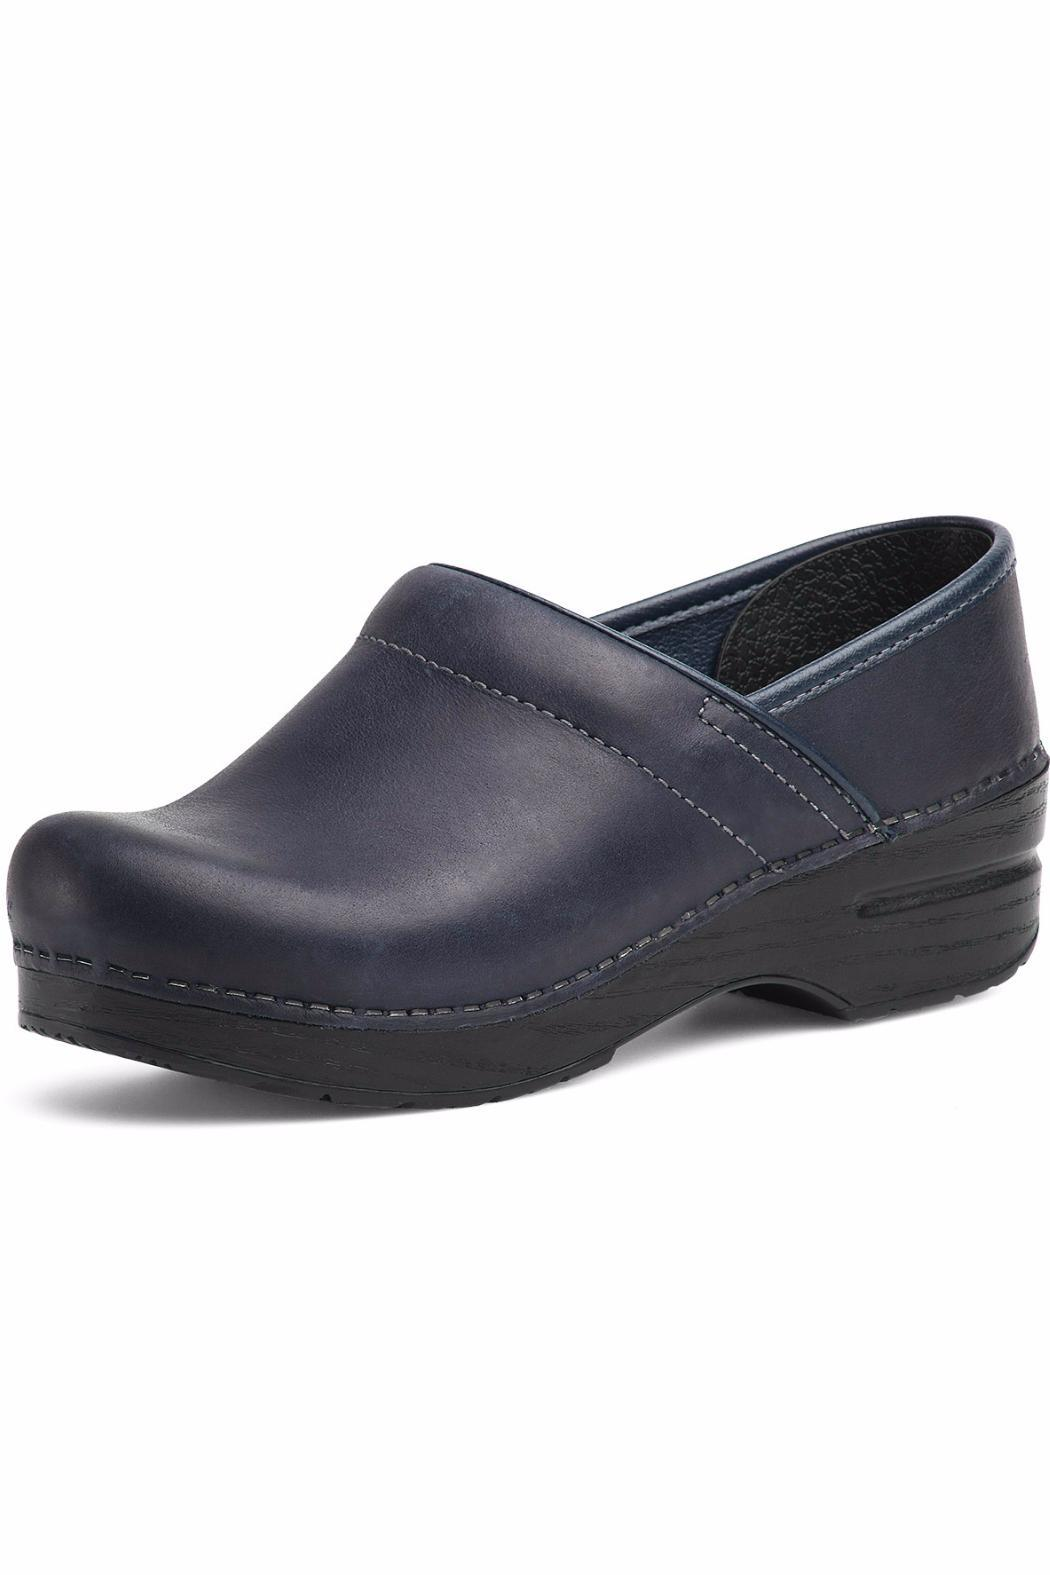 Dansko Best Price